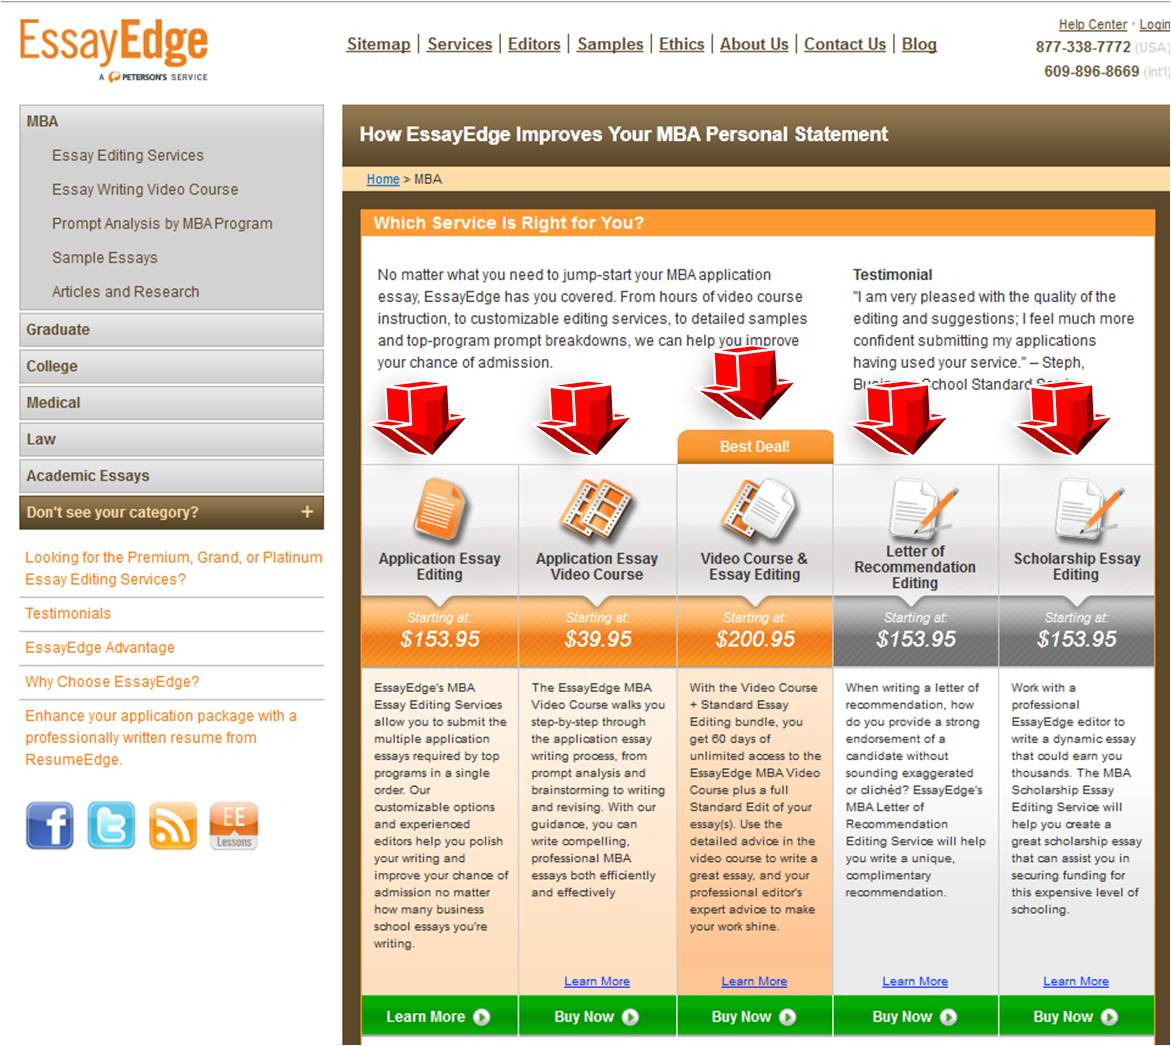 015 Essay Edge Step2 To Enter Essayedge Coupon Unusual Reddit Login Full